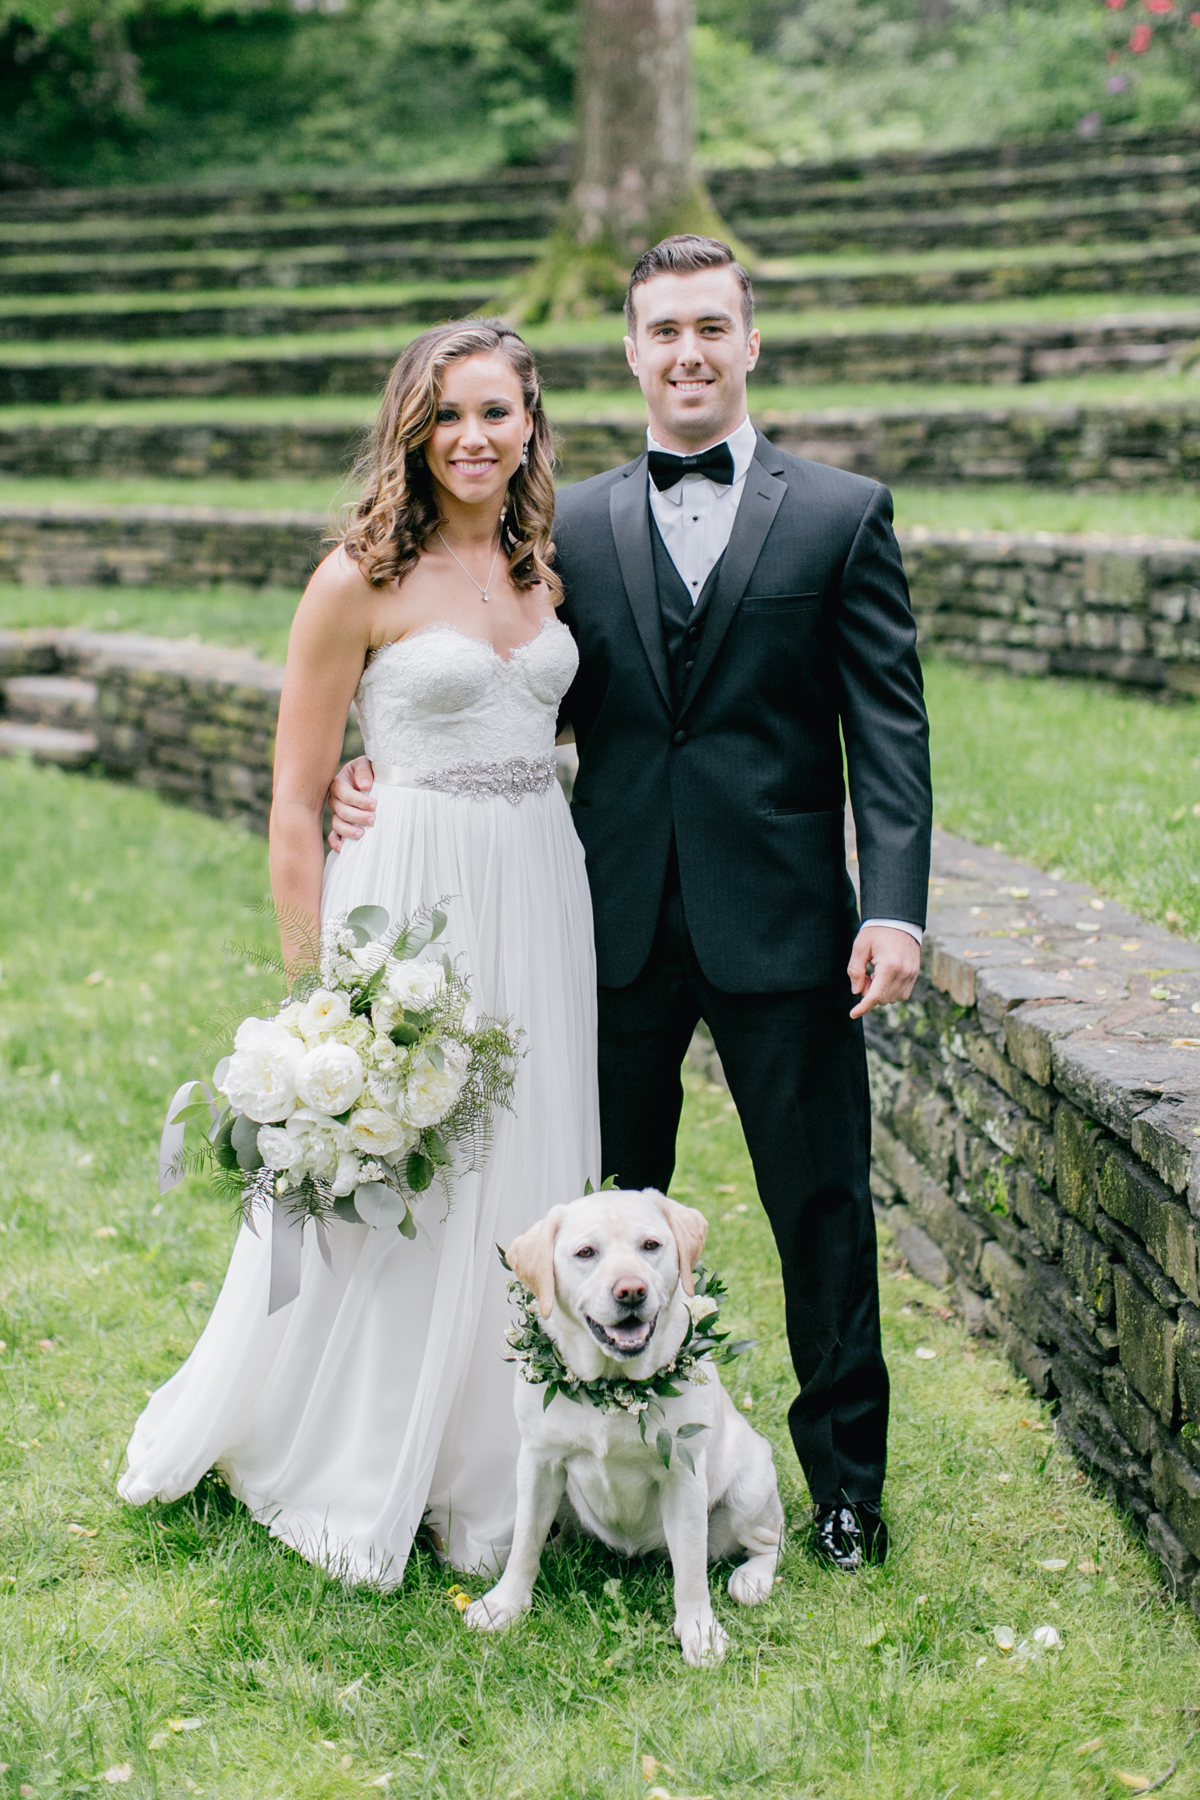 Bride & Groom with Dog at Swarthmore College's Amphitheater